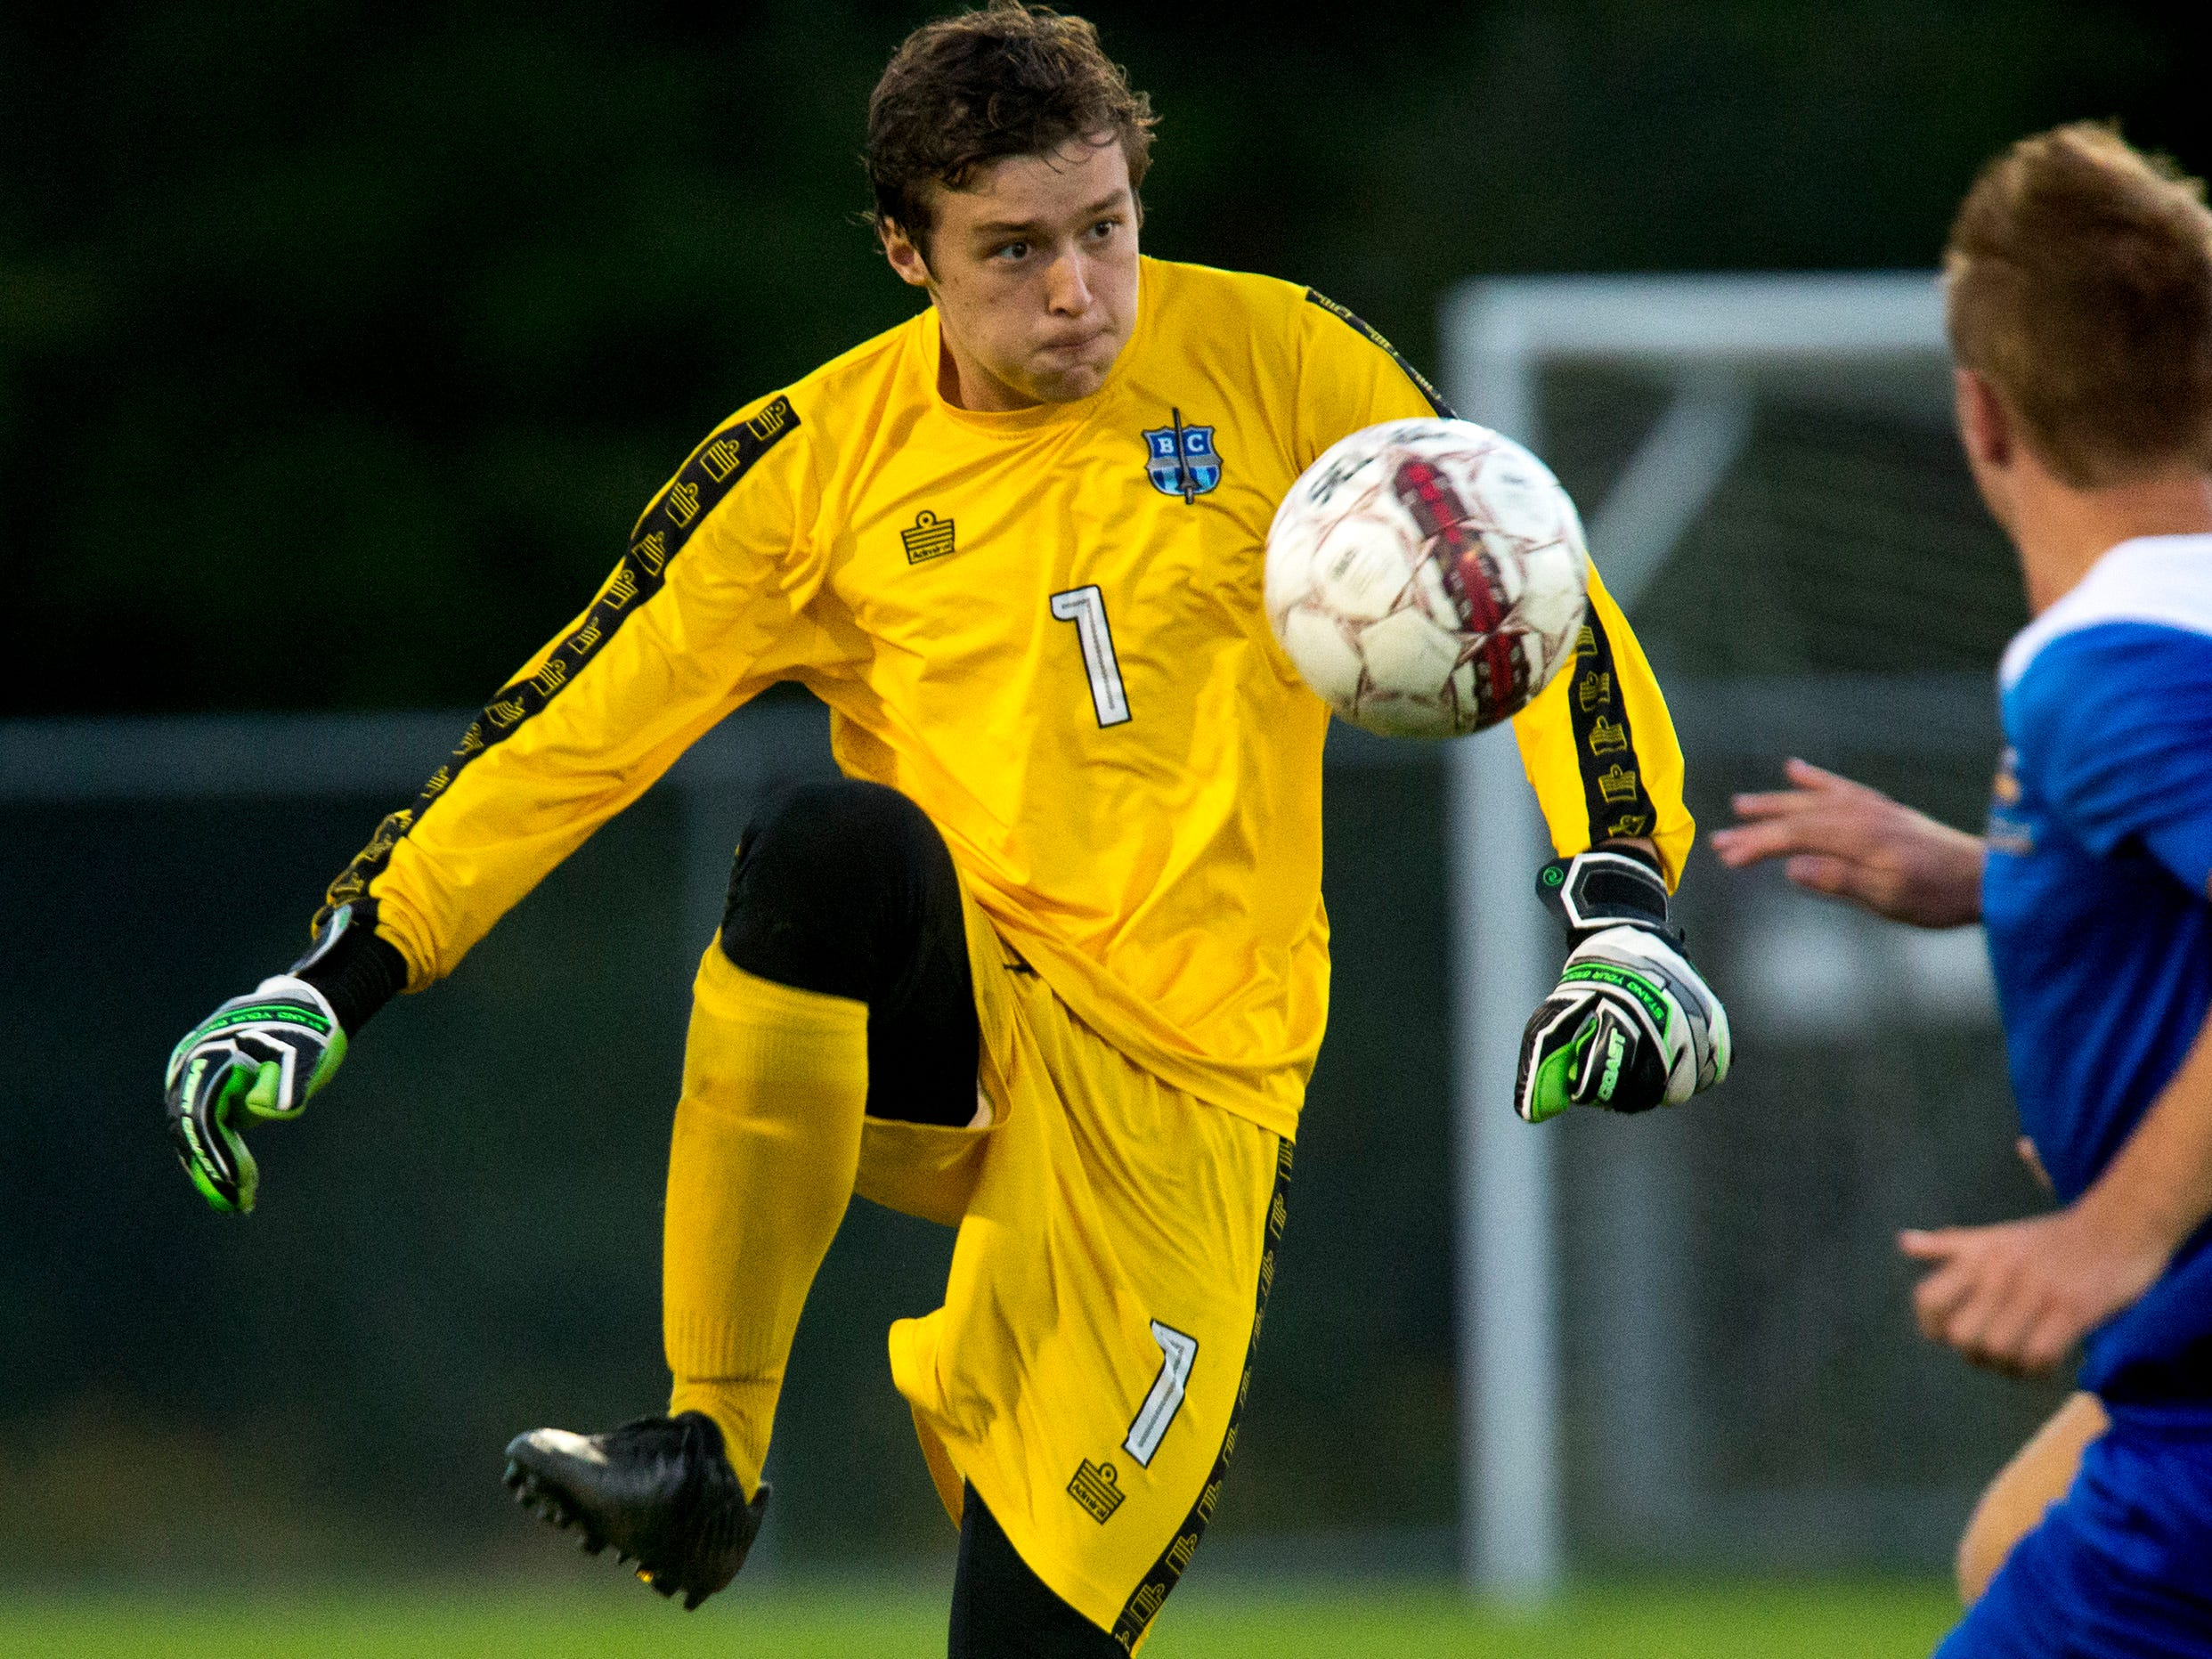 Brookfield Central's Daniel Yurk deflects the ball at Germantown on Sept. 13.